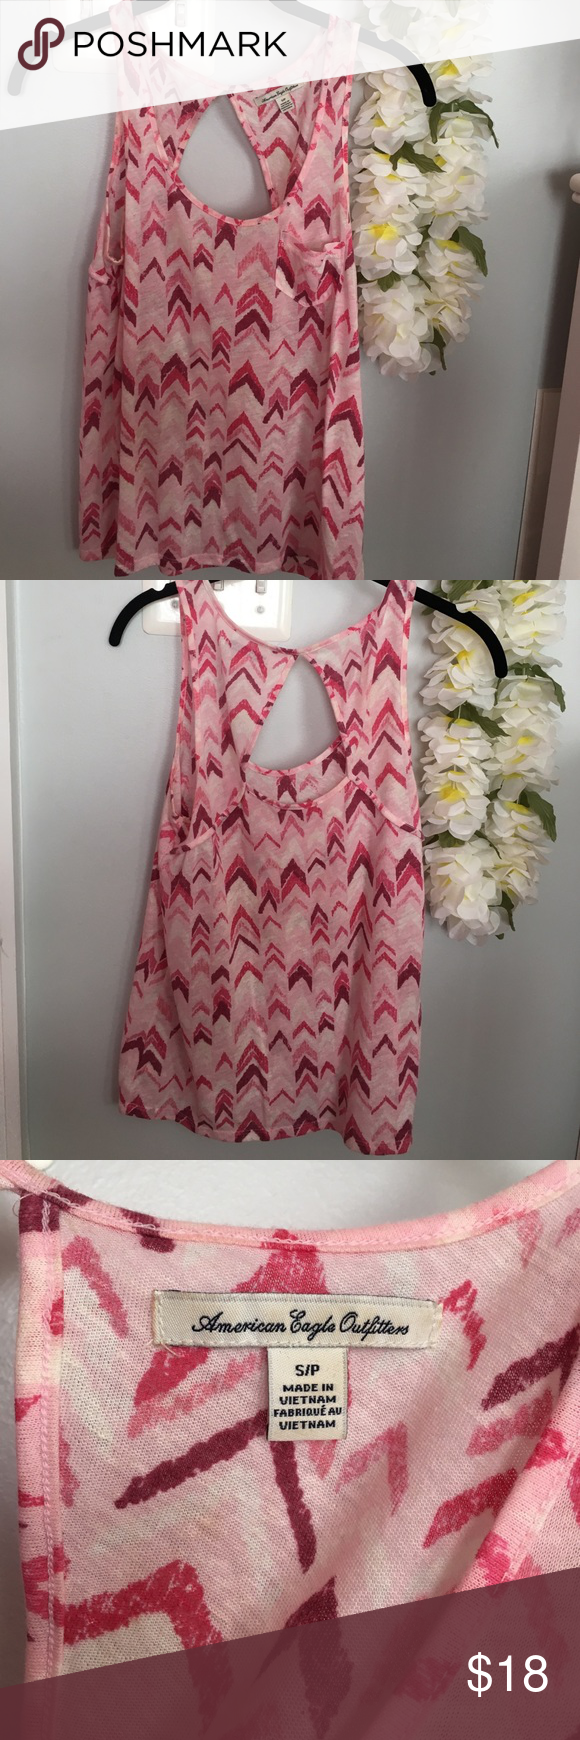 Pink and burgundy patterned front pocket tank top Used a few times but still in great condition! Great for the summer! American Eagle Outfitters Tops Tank Tops